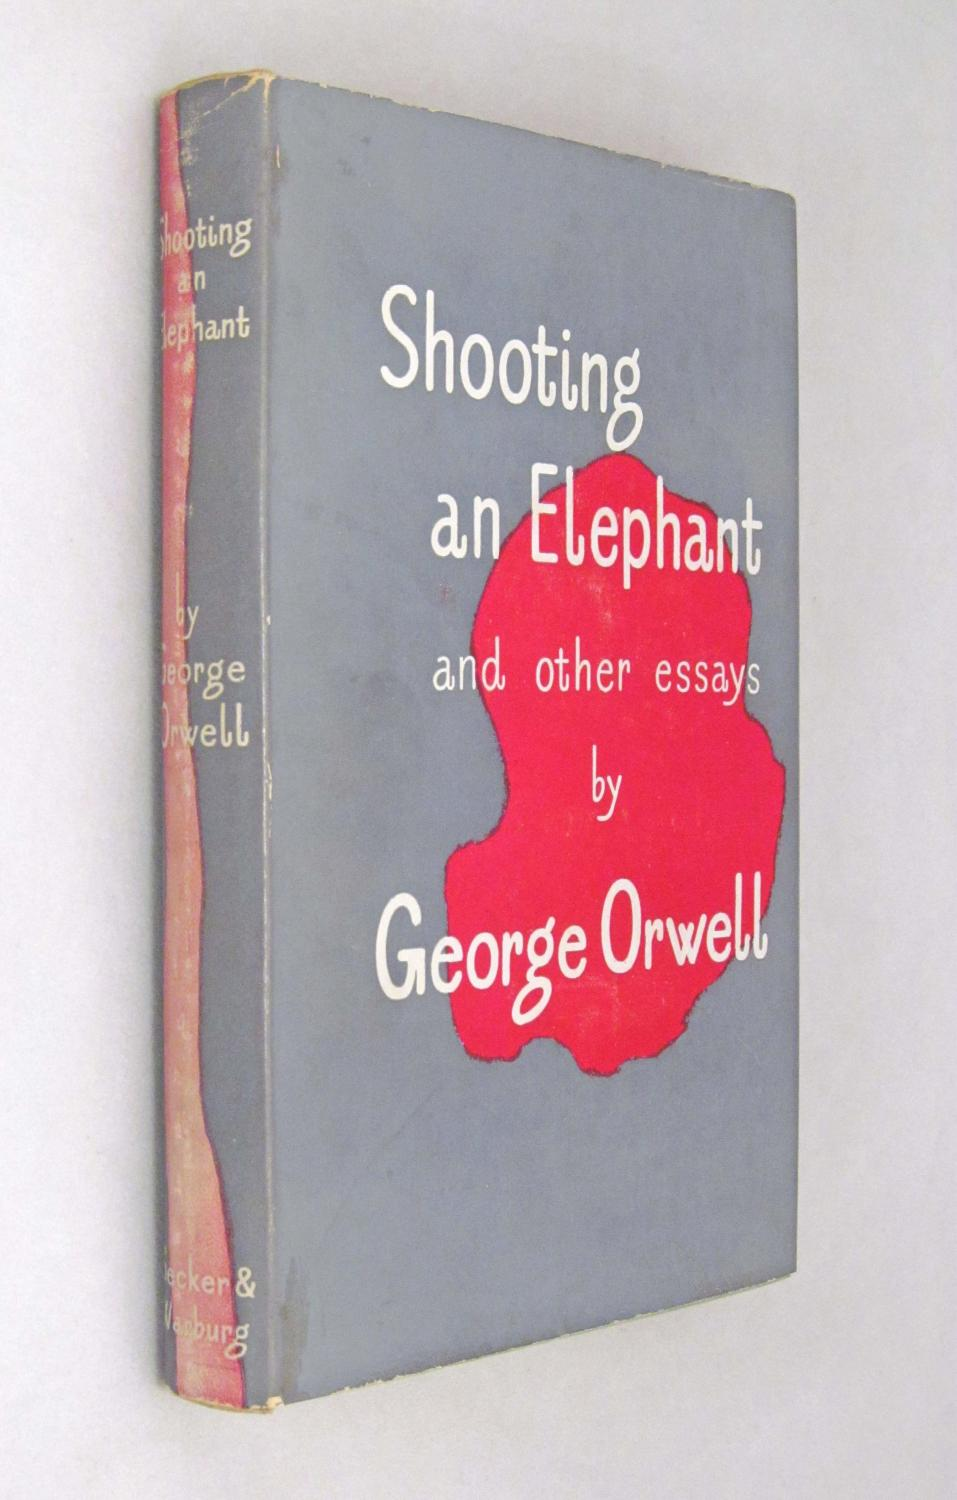 shooting an elephant and other essays by orwell george abebooks